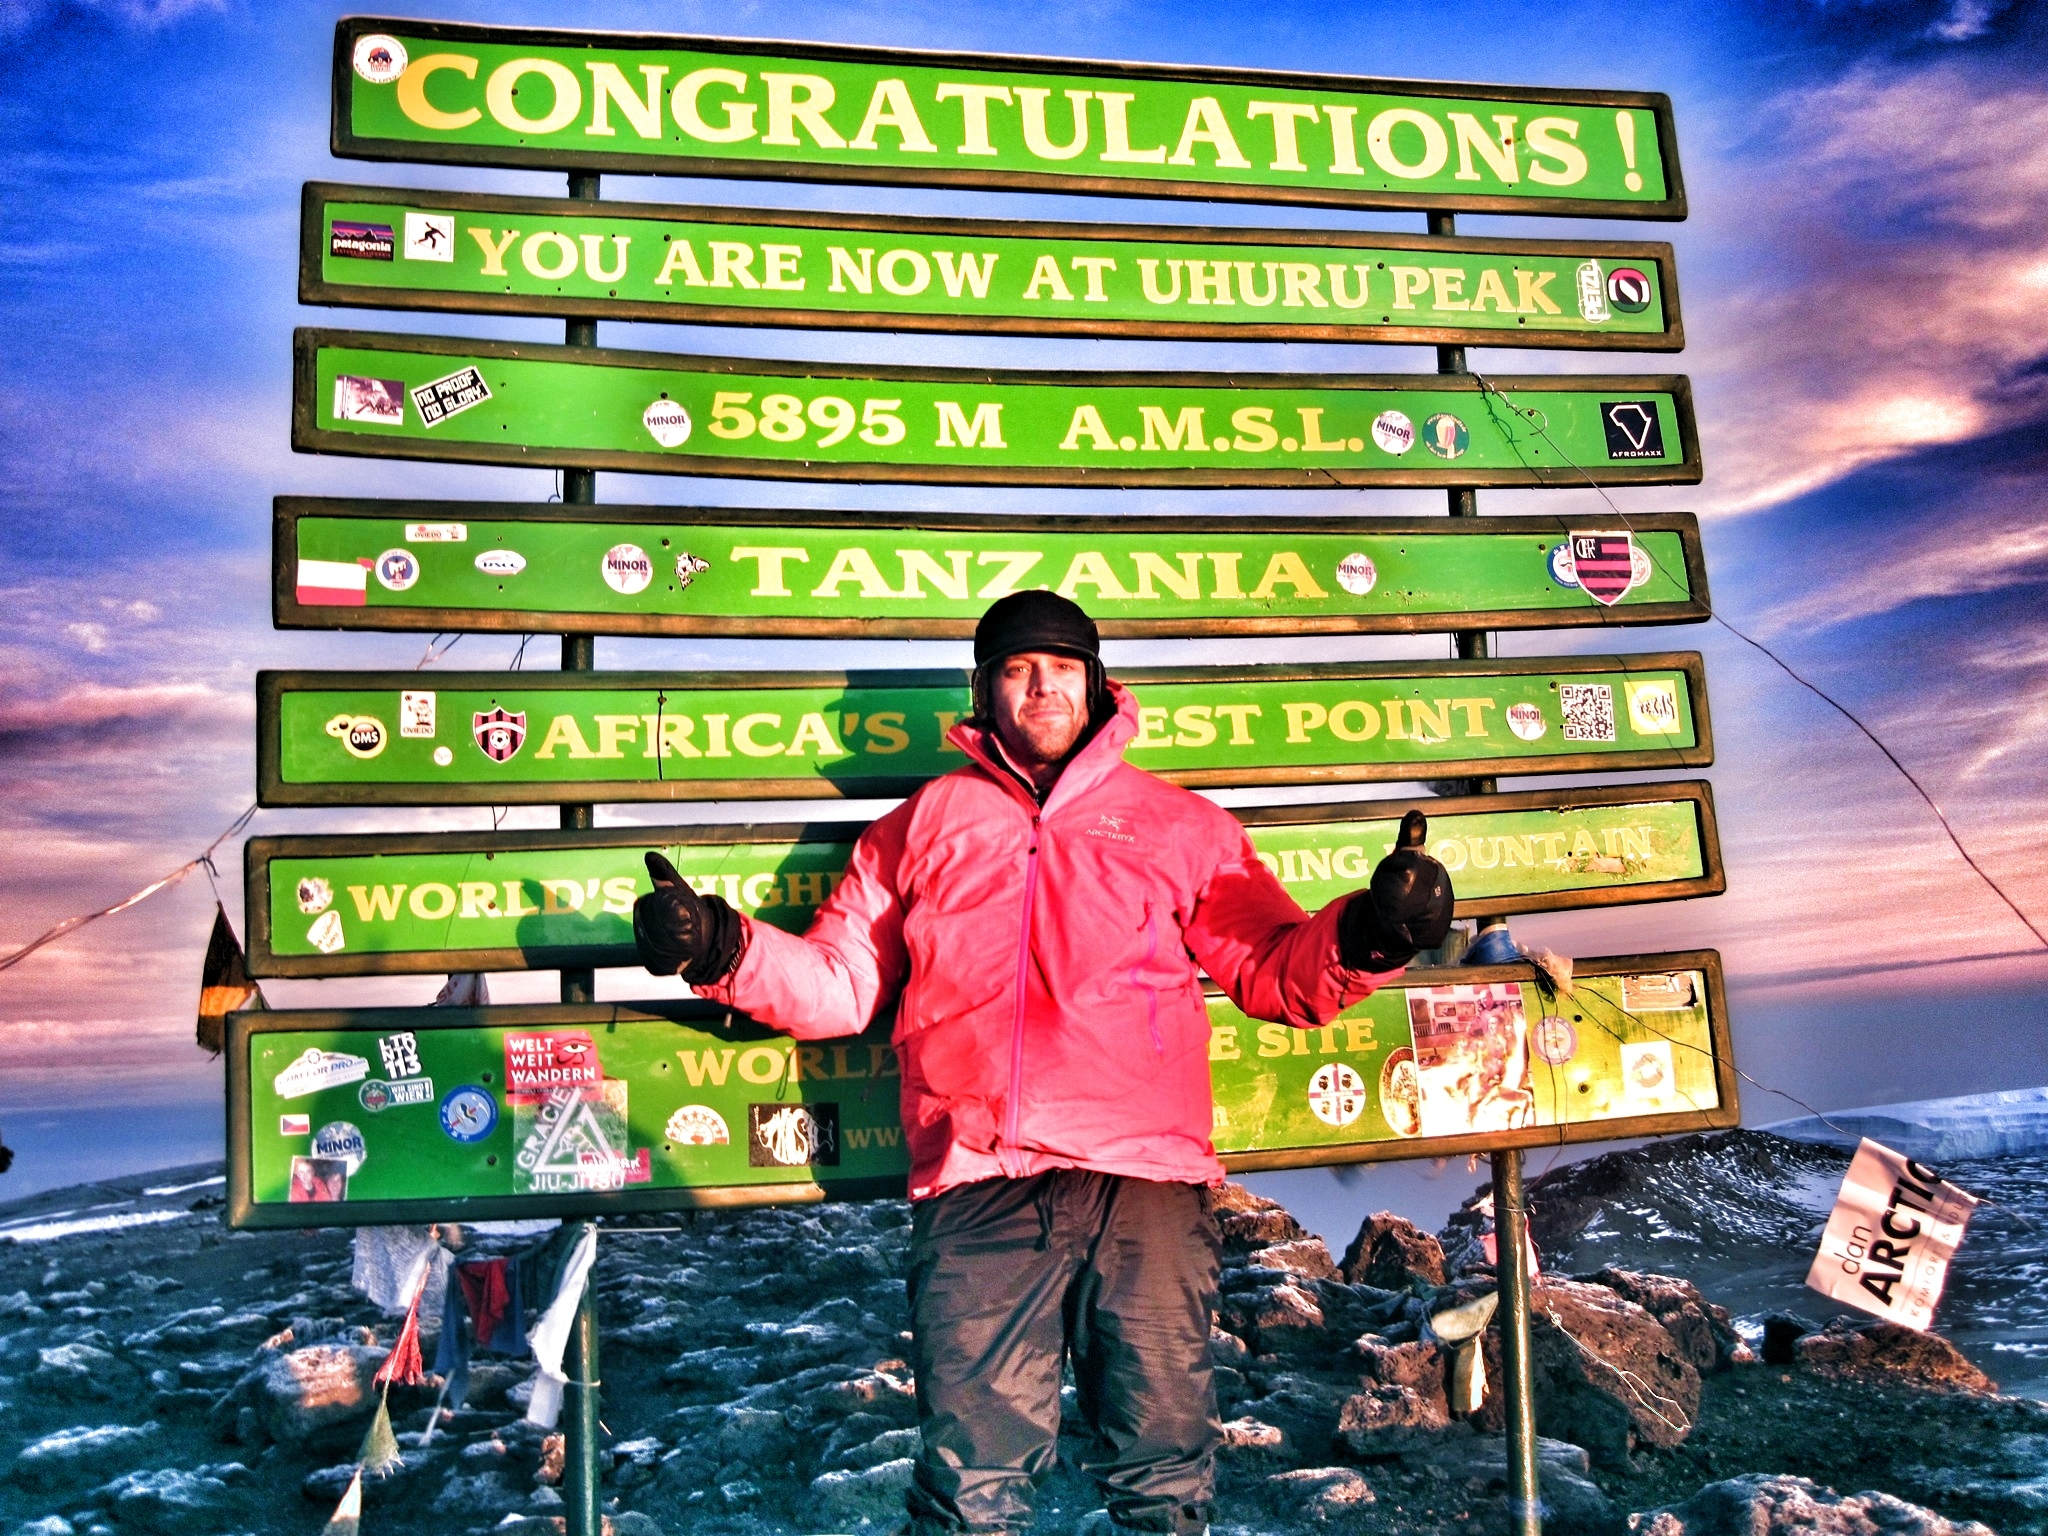 My climb to Mt. Kilimanjaro in 2012